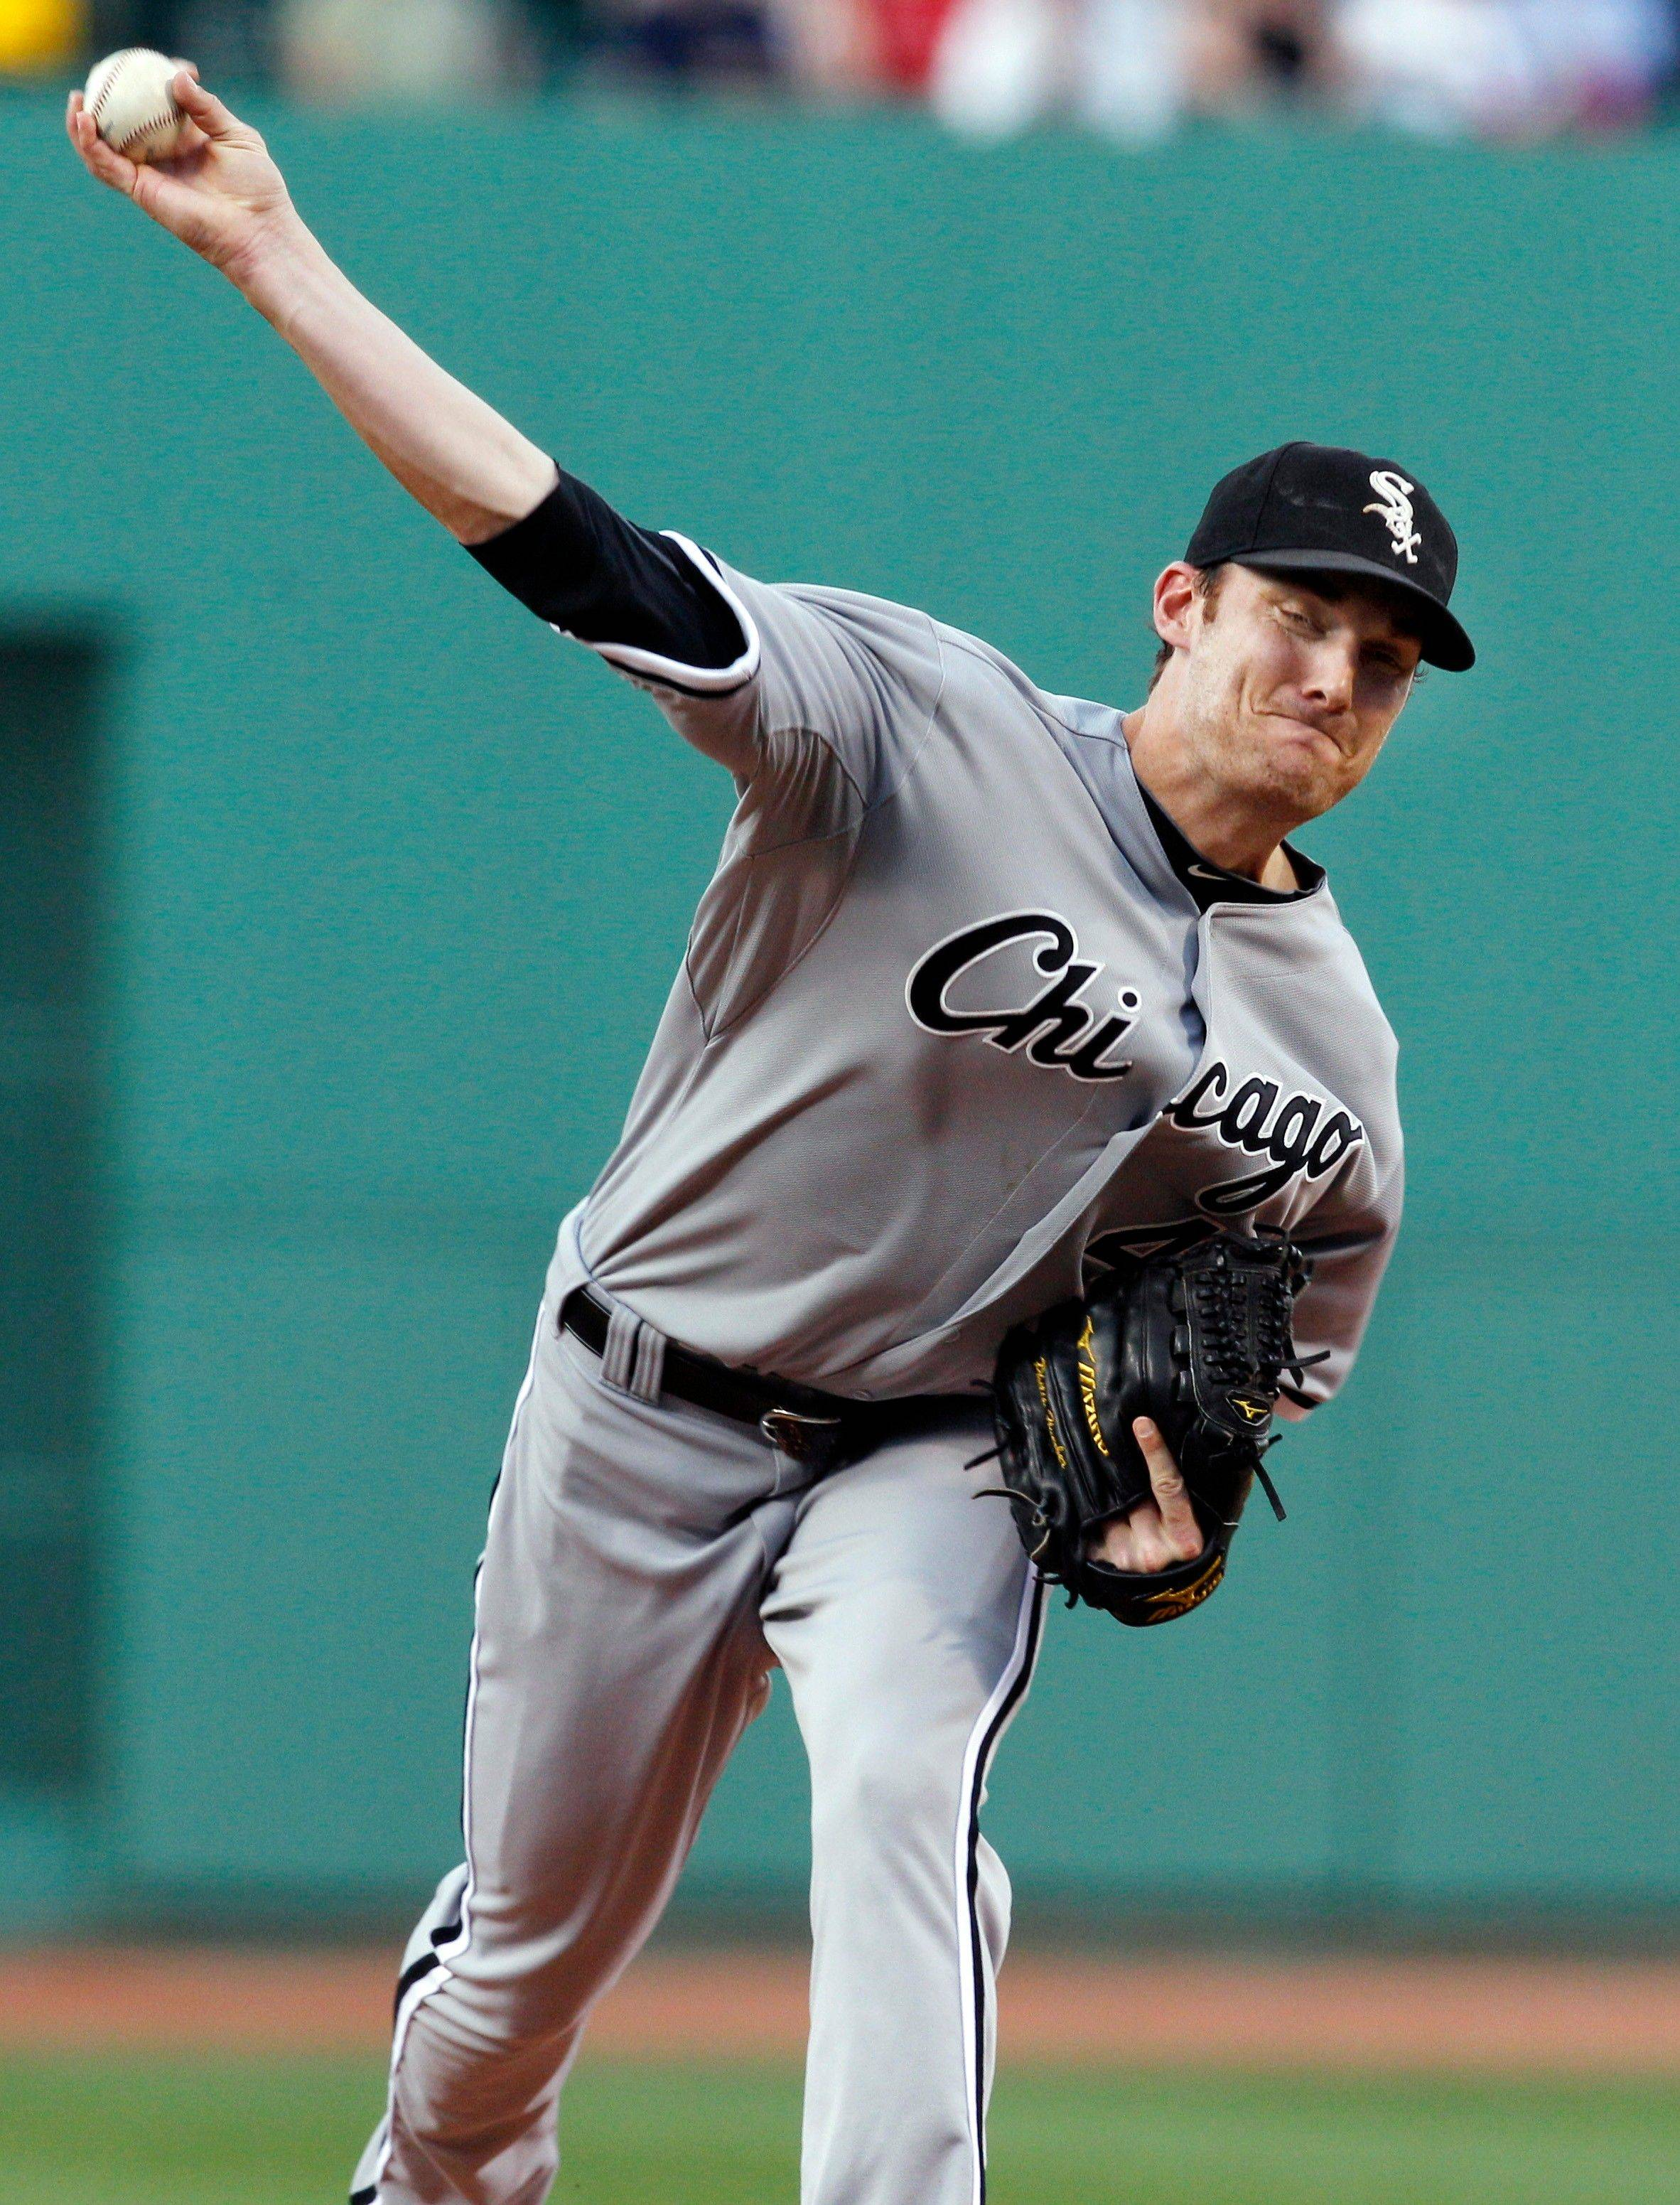 White Sox starting pitcher Philip Humber improved to 4-3 with Tuesday night's victory at Boston. His ERA is 3.06.